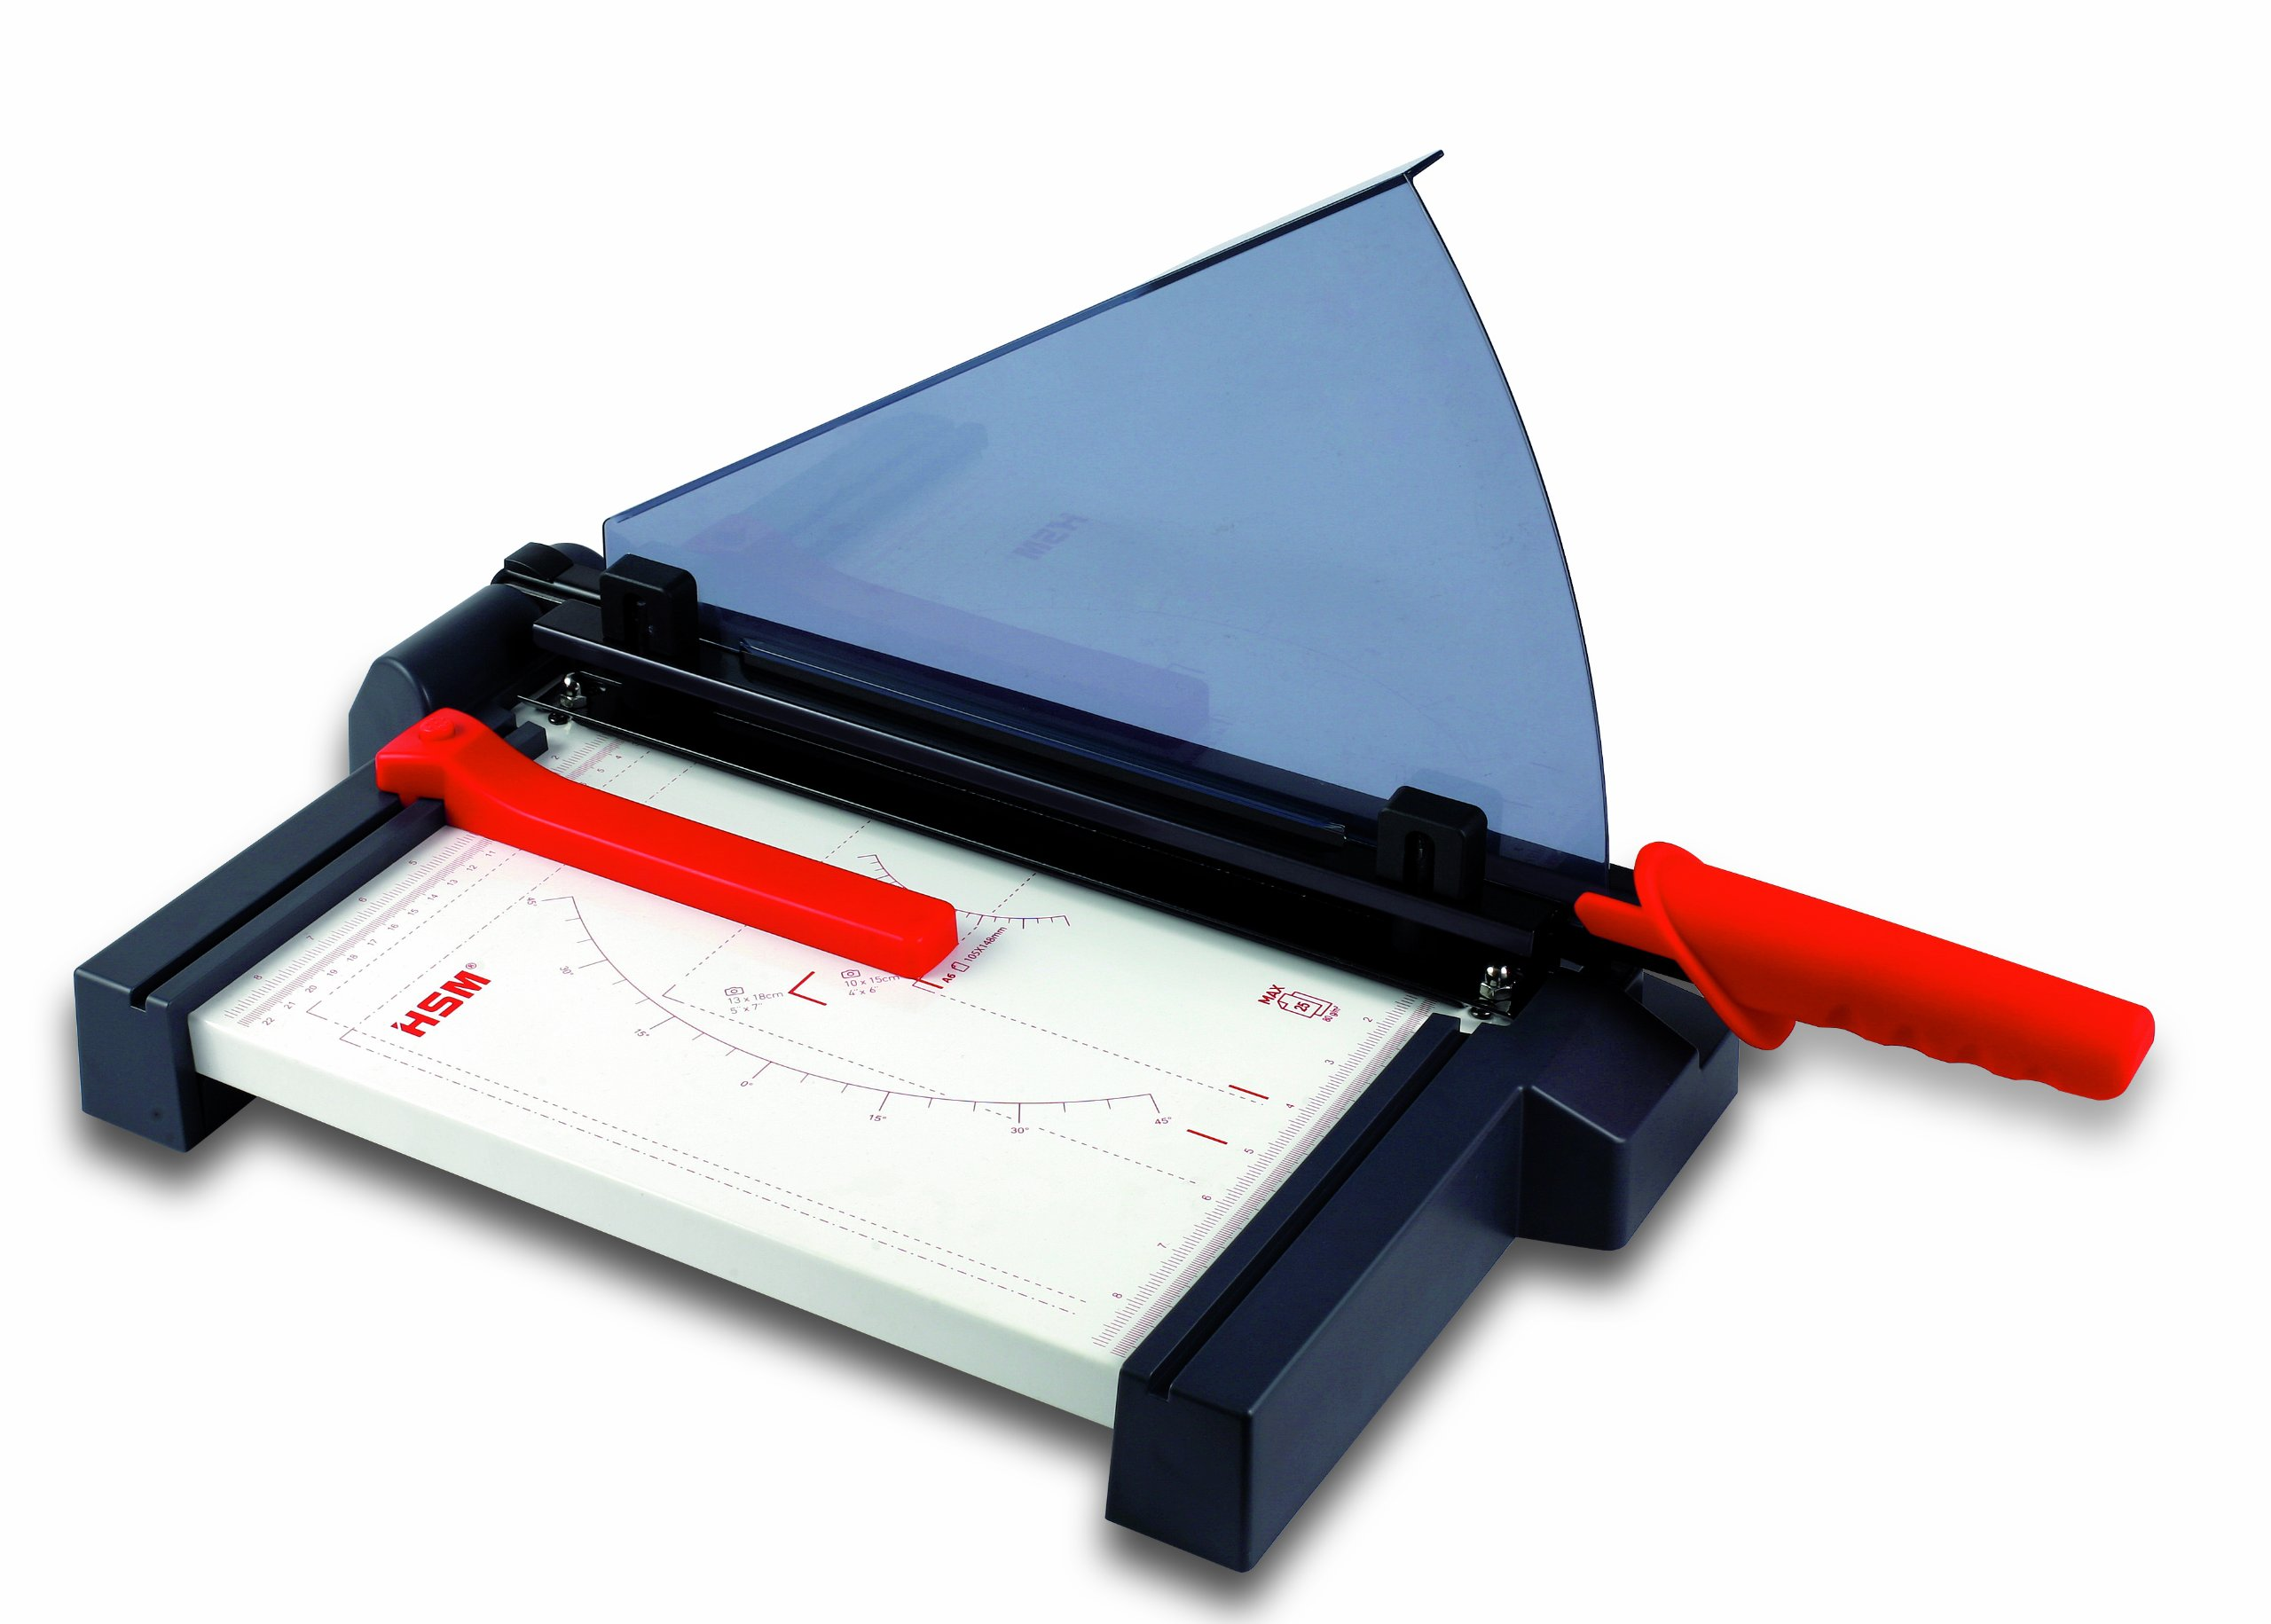 HSM Cutline G-Series G3225 Guillotine Paper Cutter, Cuts Up to 25 Sheets